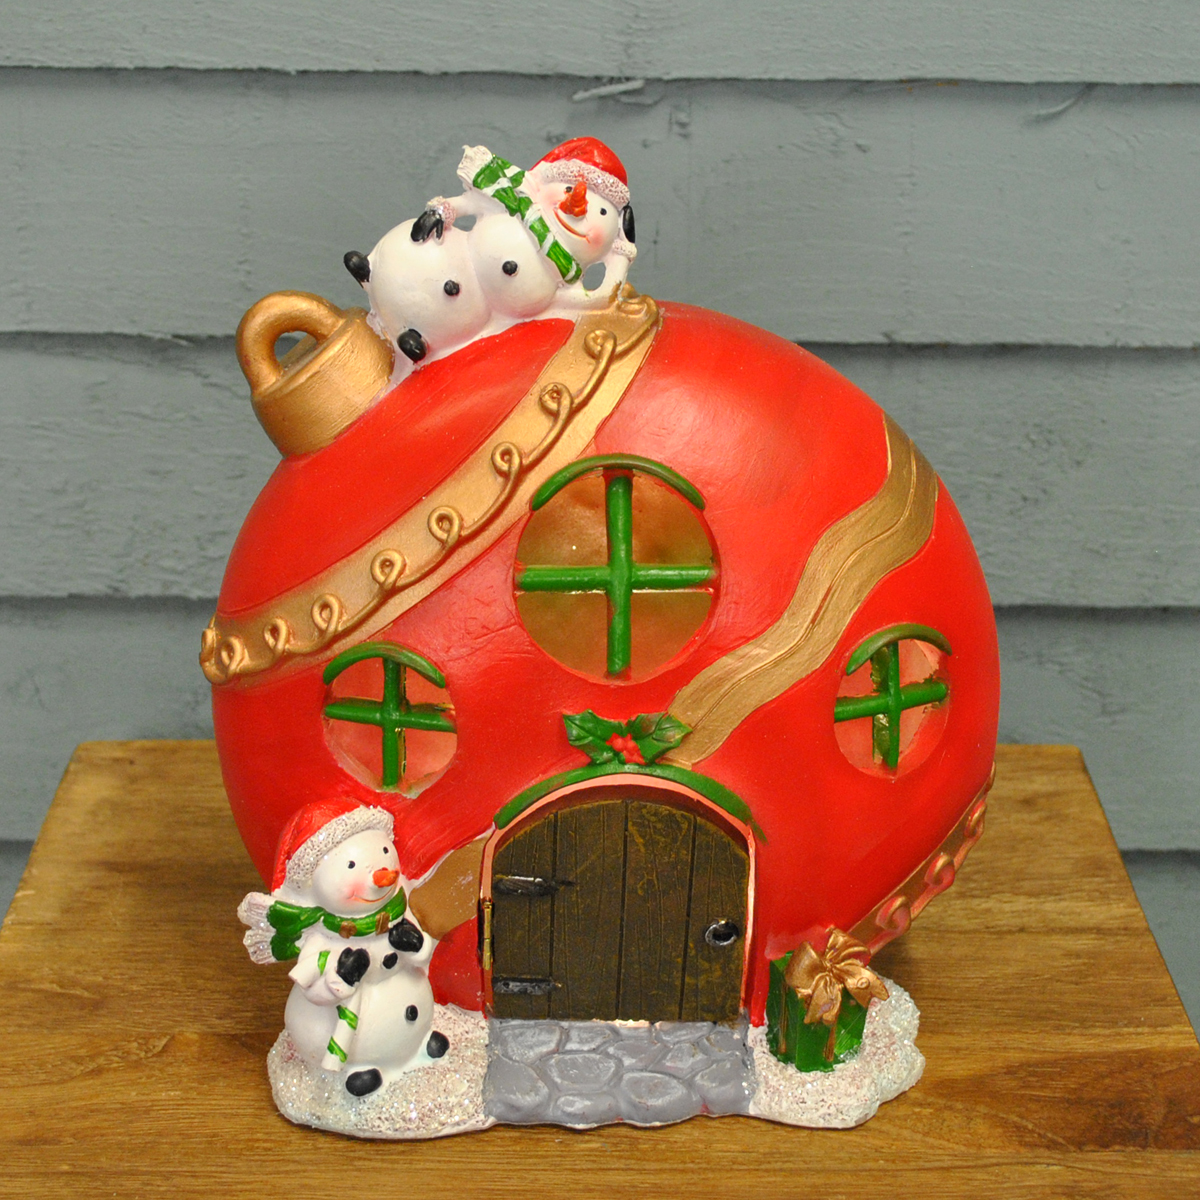 Christmas Scene Bauble House Ornament Light by Three Kings